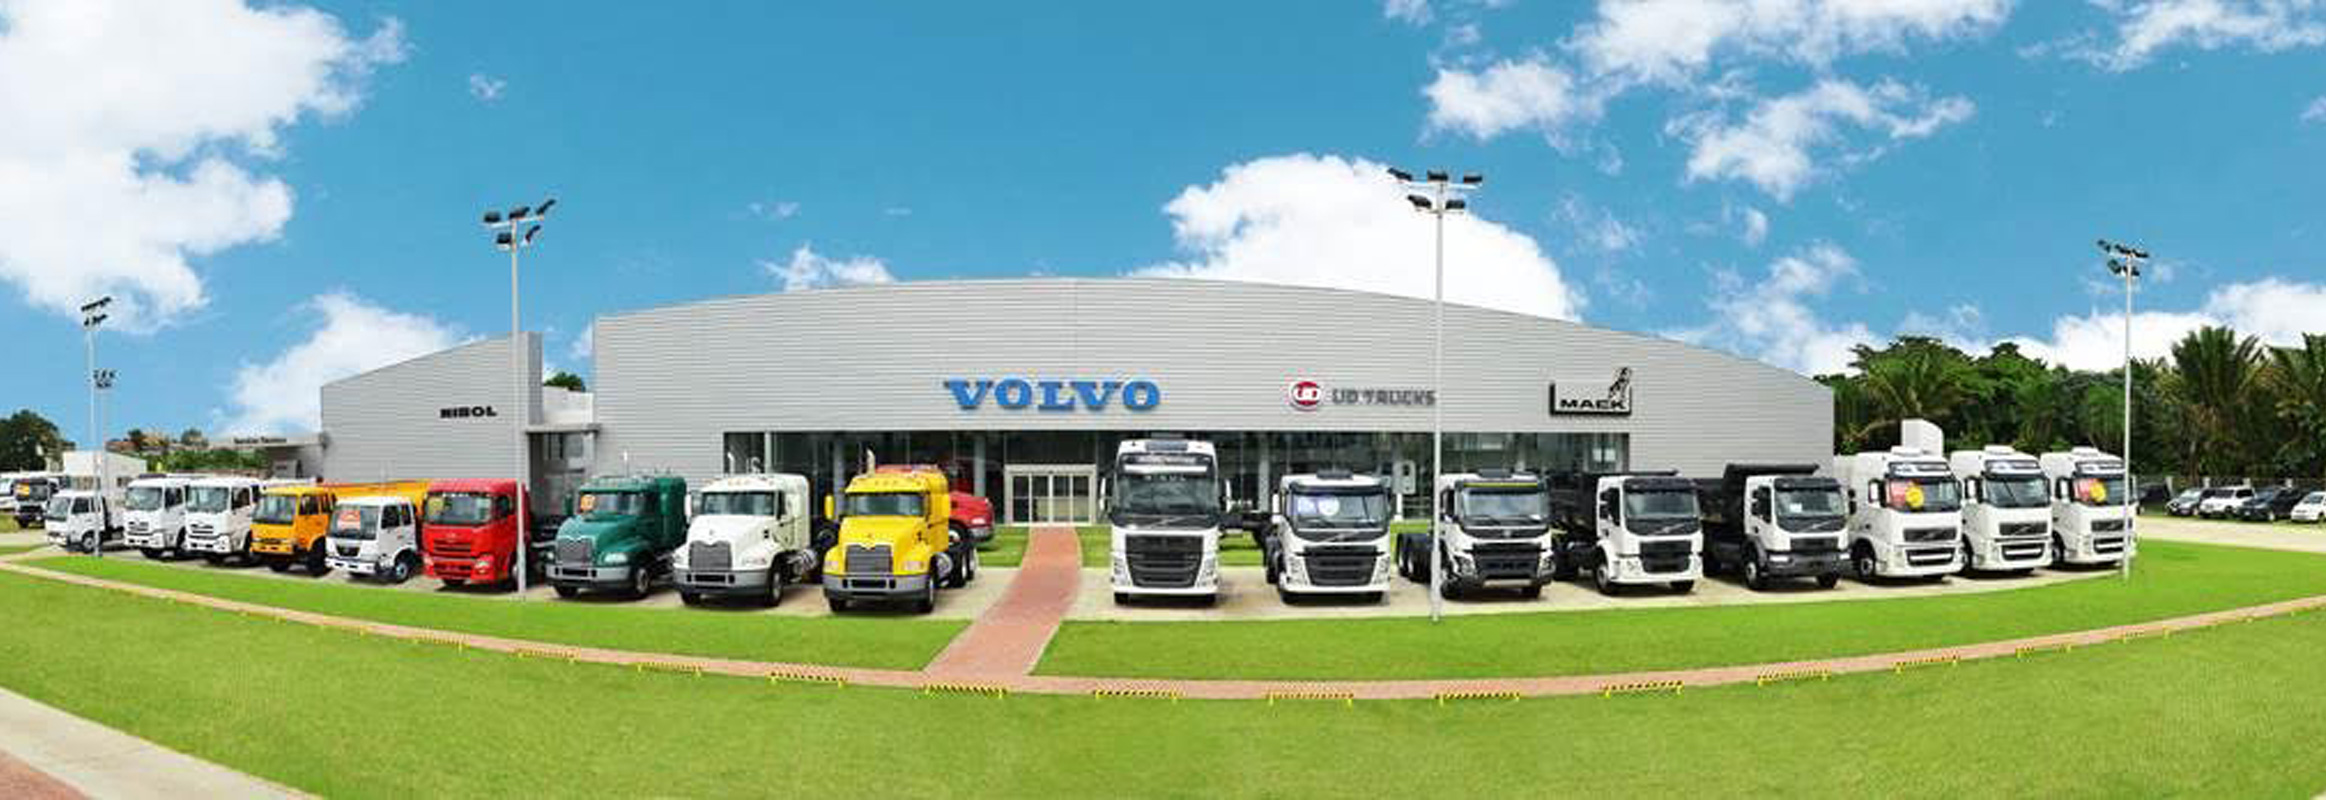 dealer volvo truck local about locator lb dealers city night en your contact lebanon us trucks find